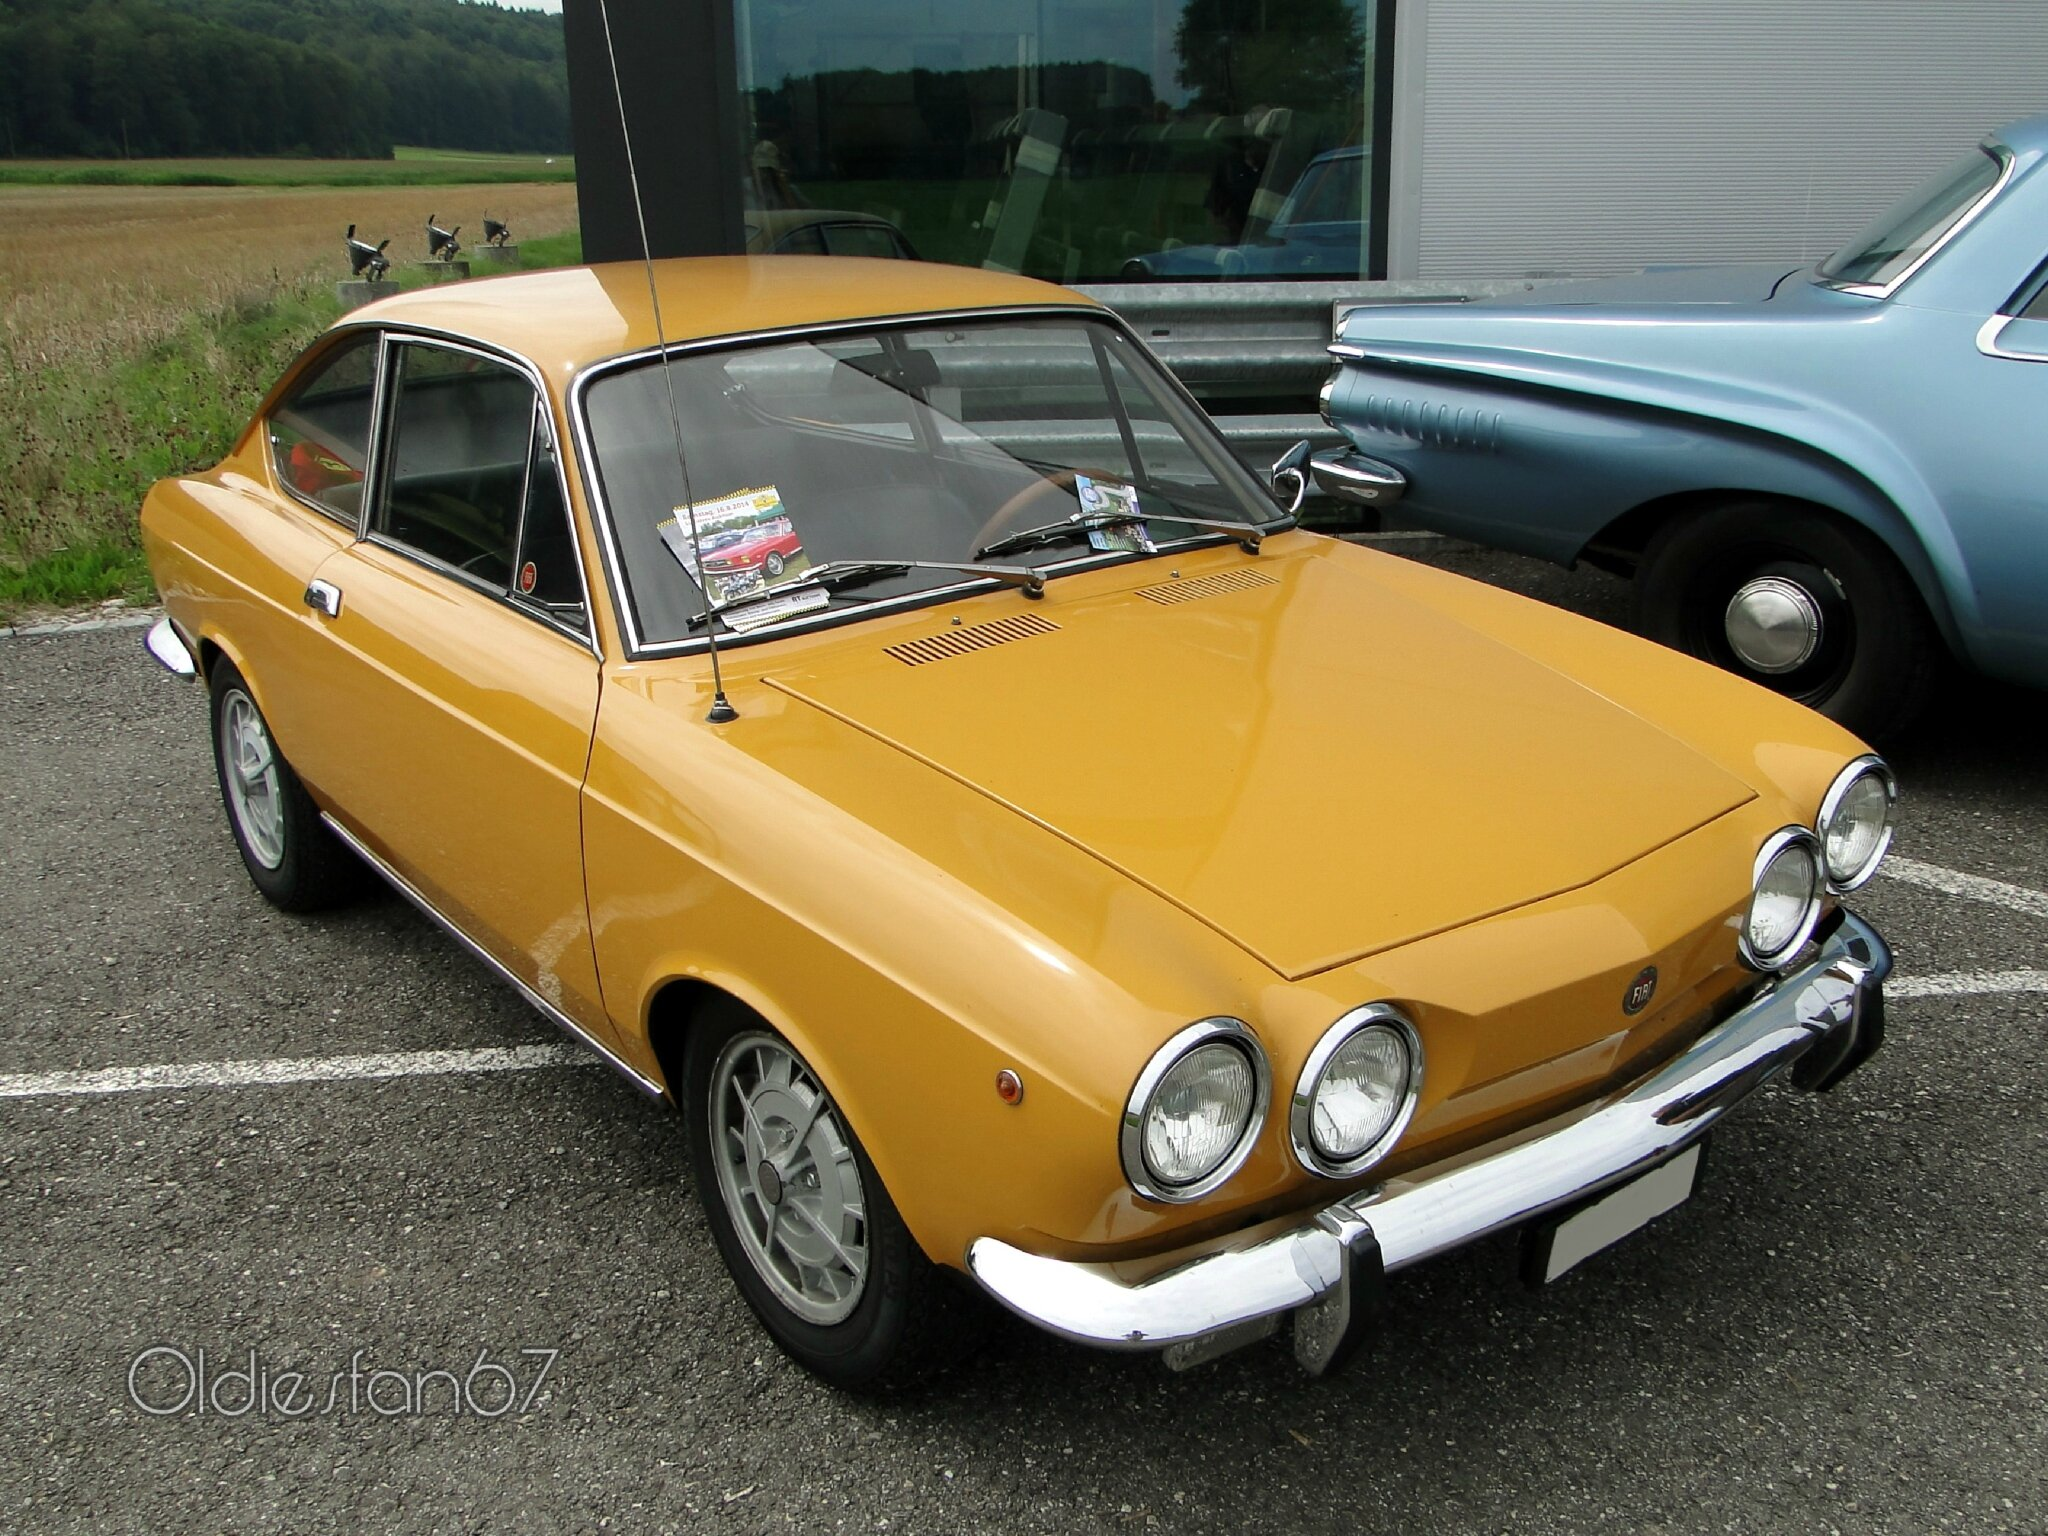 fiat 850 sport coupe 3e s rie 1971 1972 oldiesfan67 mon. Black Bedroom Furniture Sets. Home Design Ideas